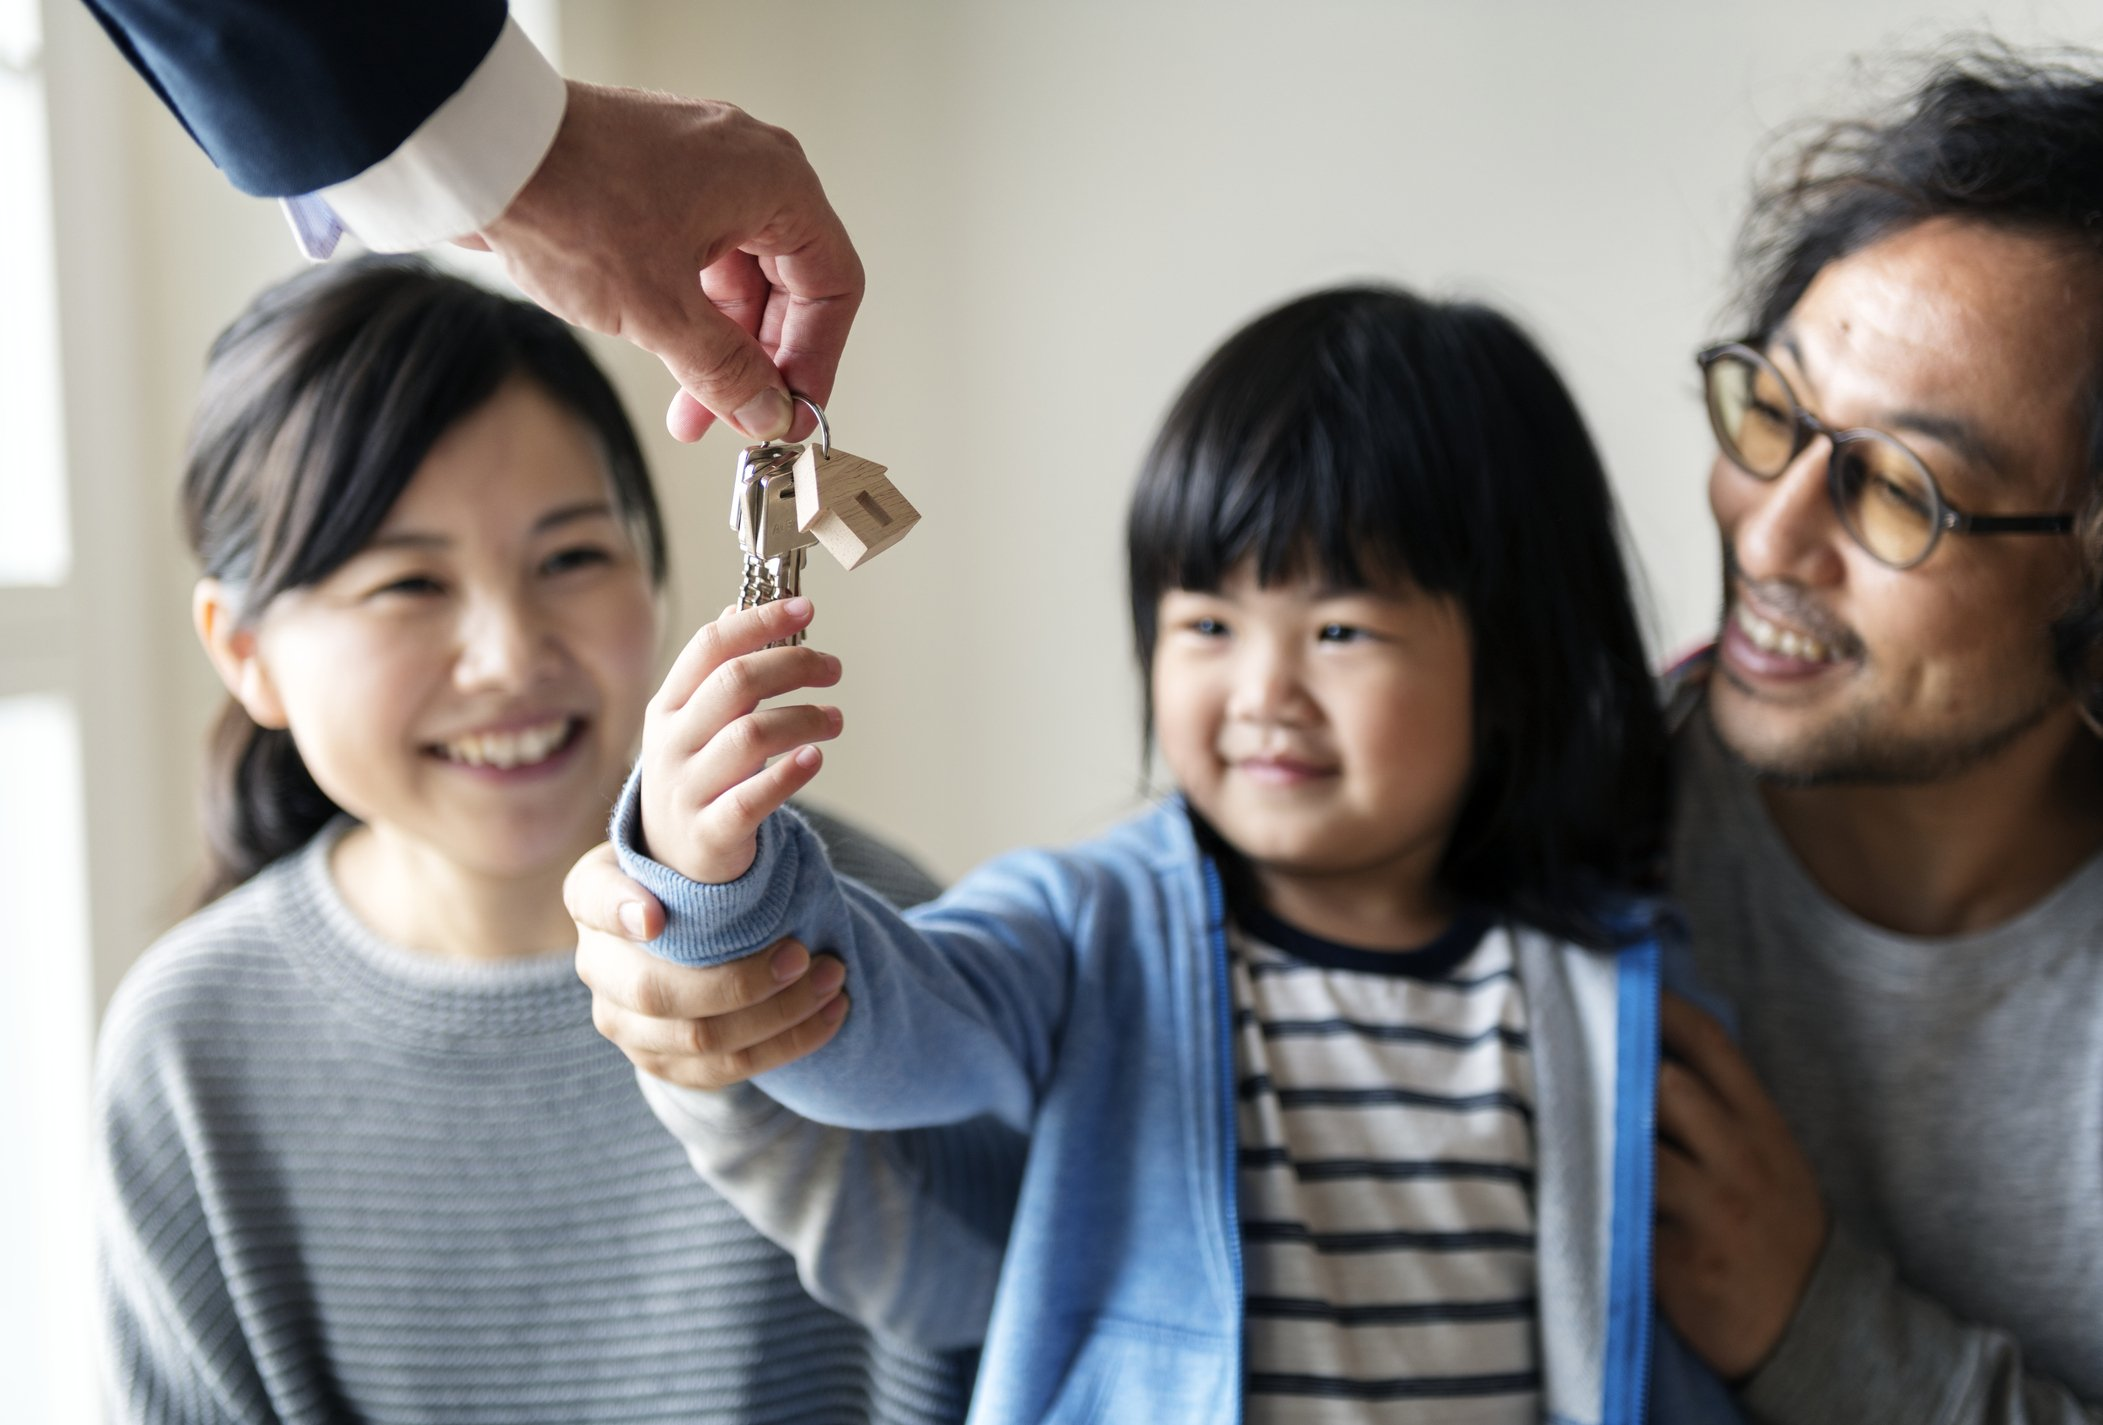 House keys handed to a child